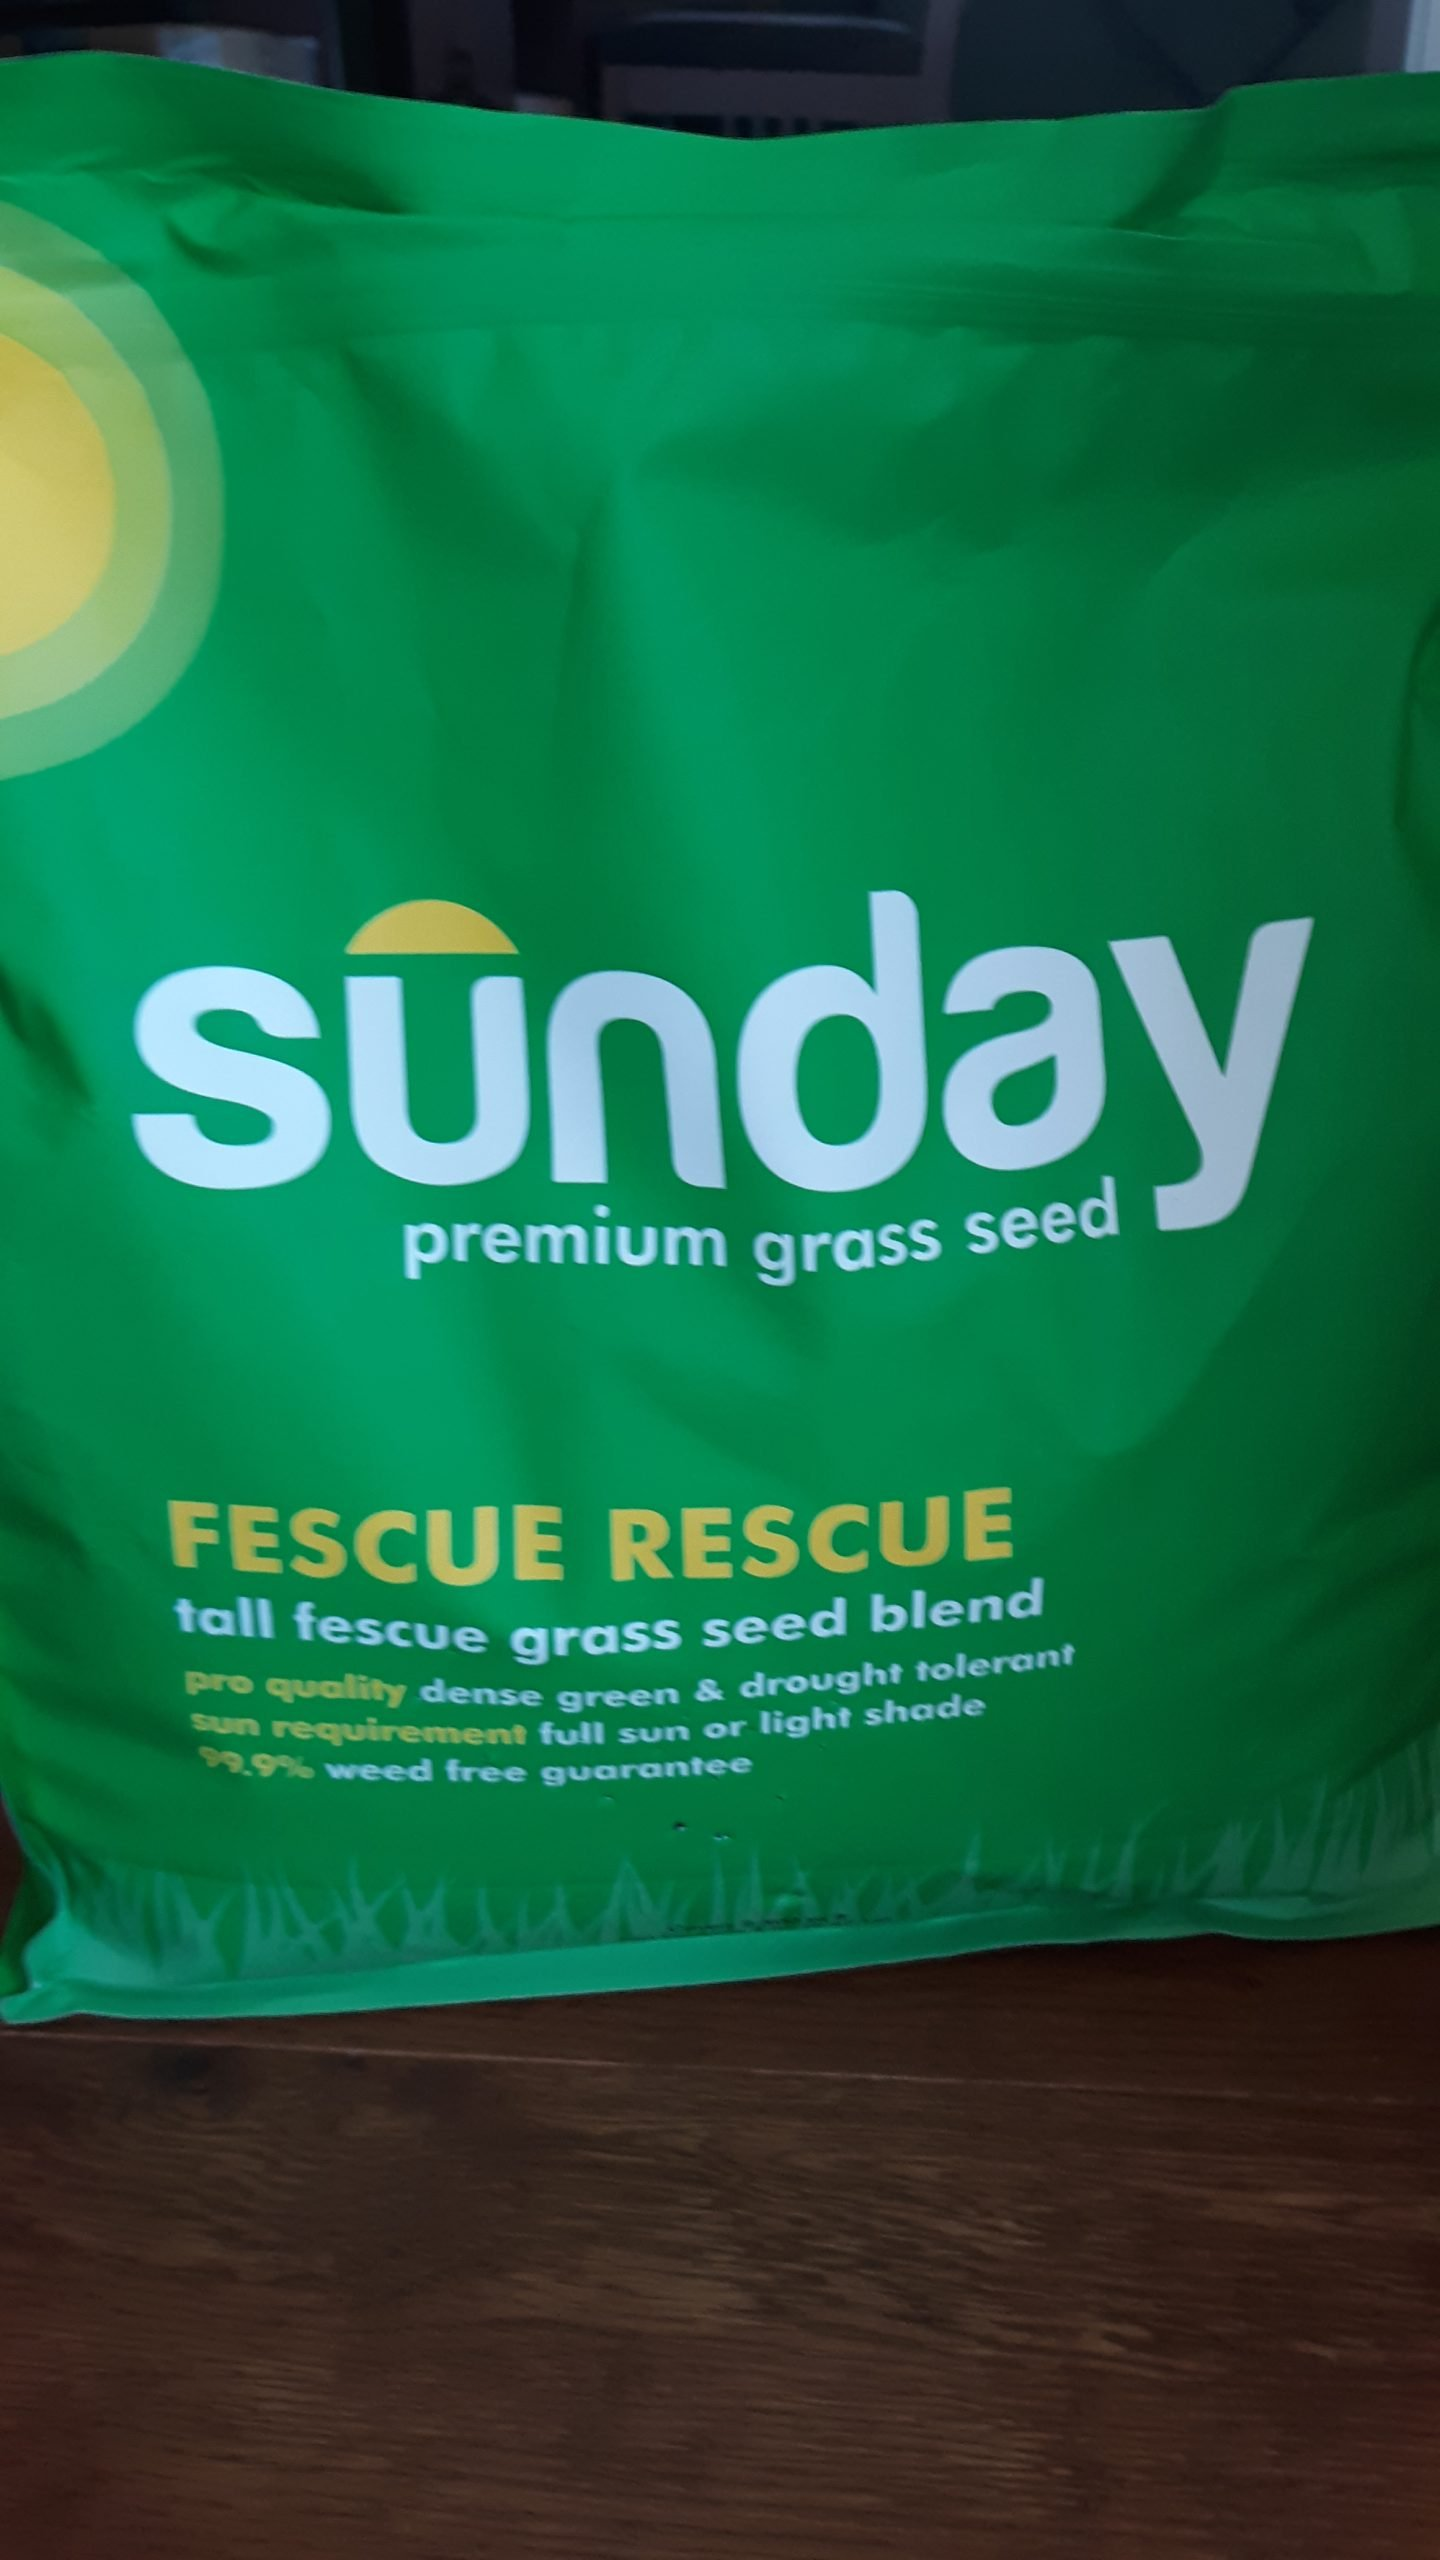 Here's What You Get With Sunday Lawn Care